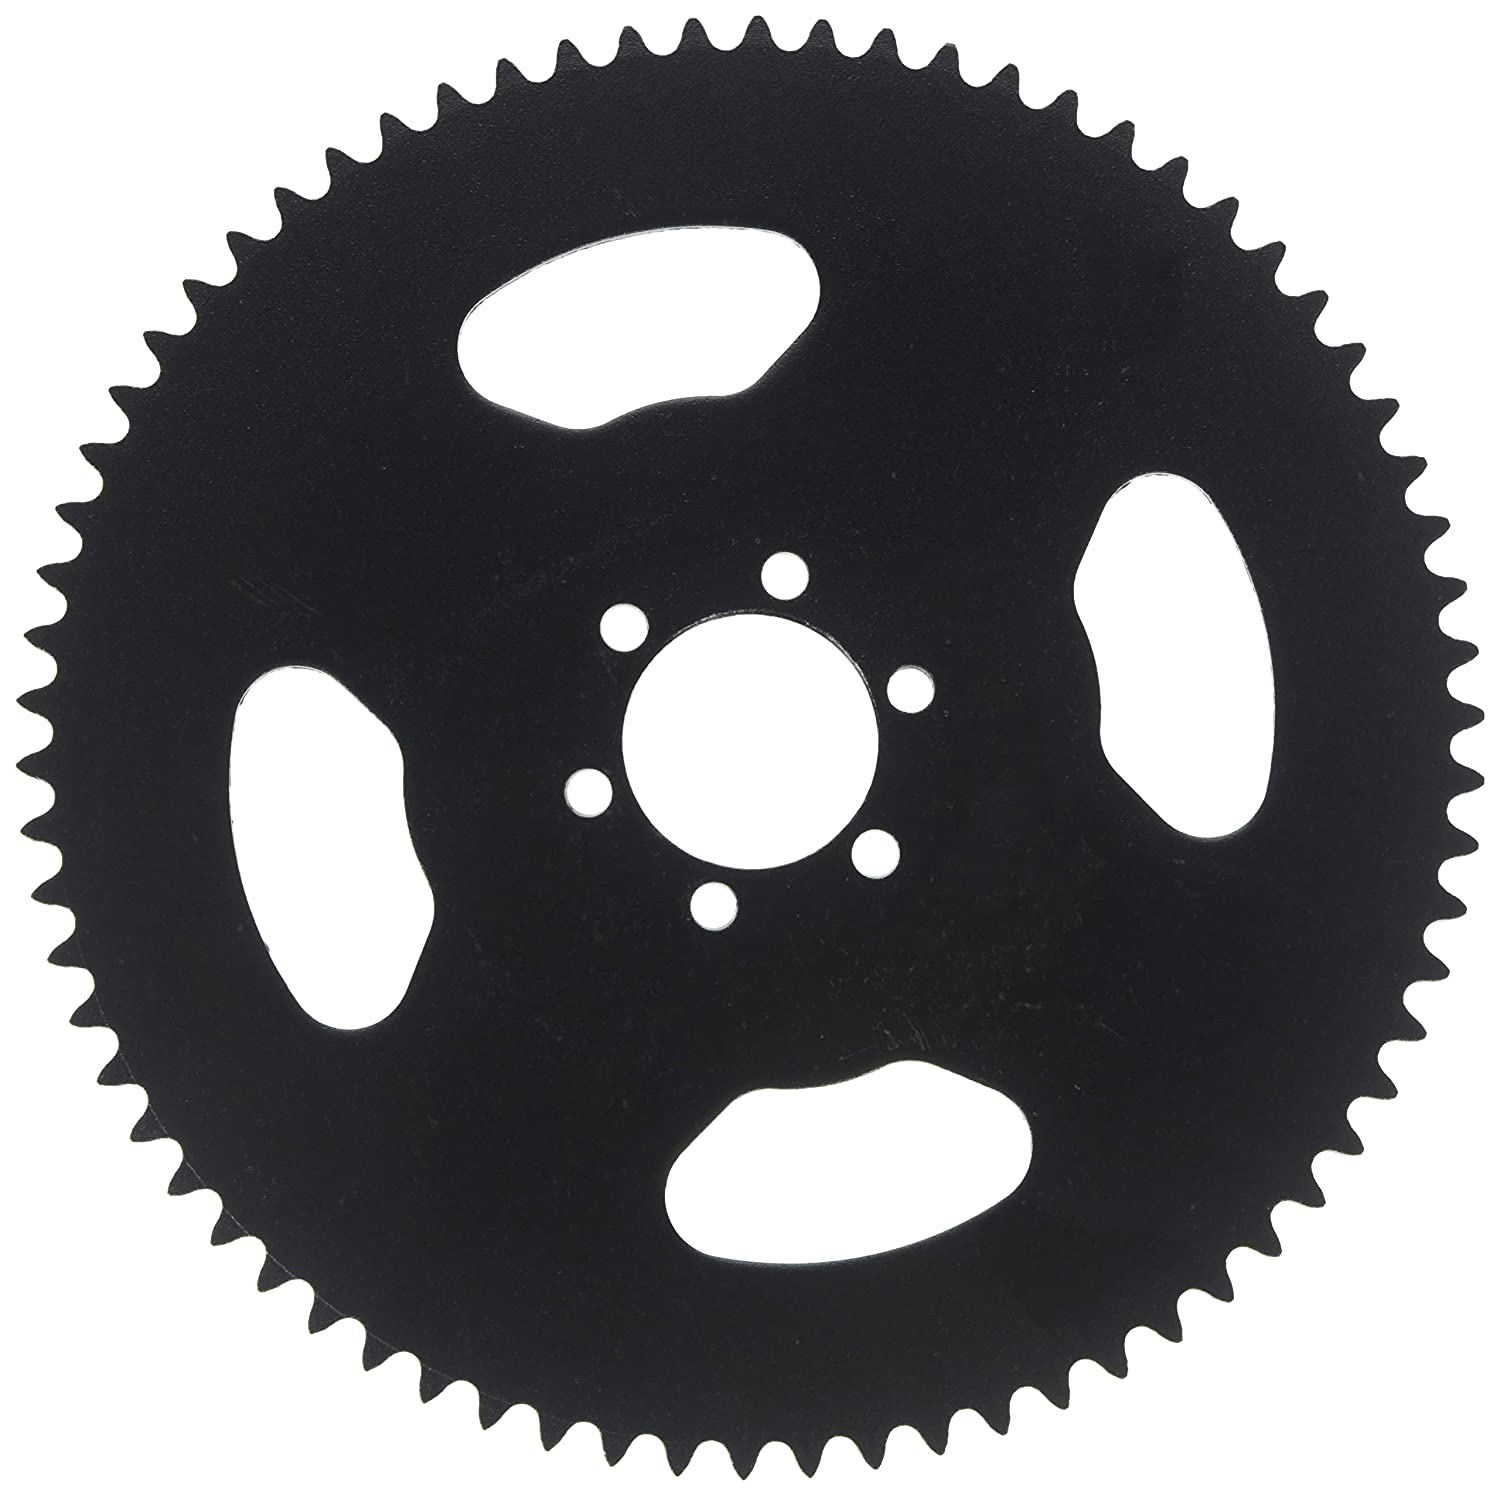 Amazon com: Monster Motion #35 Chain 70 Tooth Sprocket for the Baja